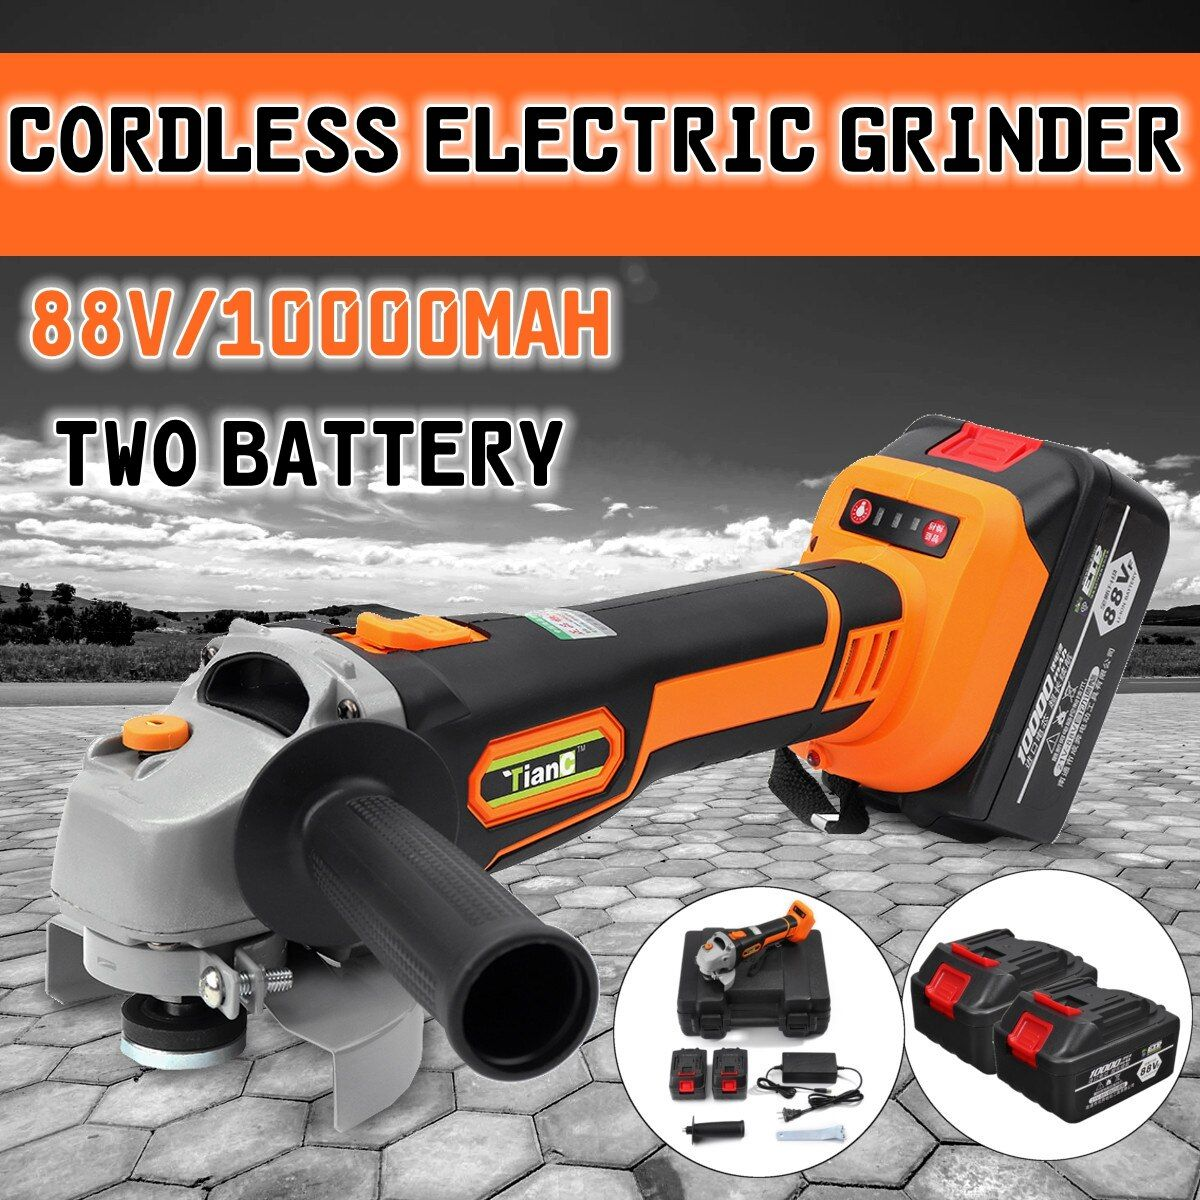 88Vf 10000mAh Electric Angle Grinder Cordless Polisher Polishing Machine Cutting Tool with 2 battery for grinding cutting metal